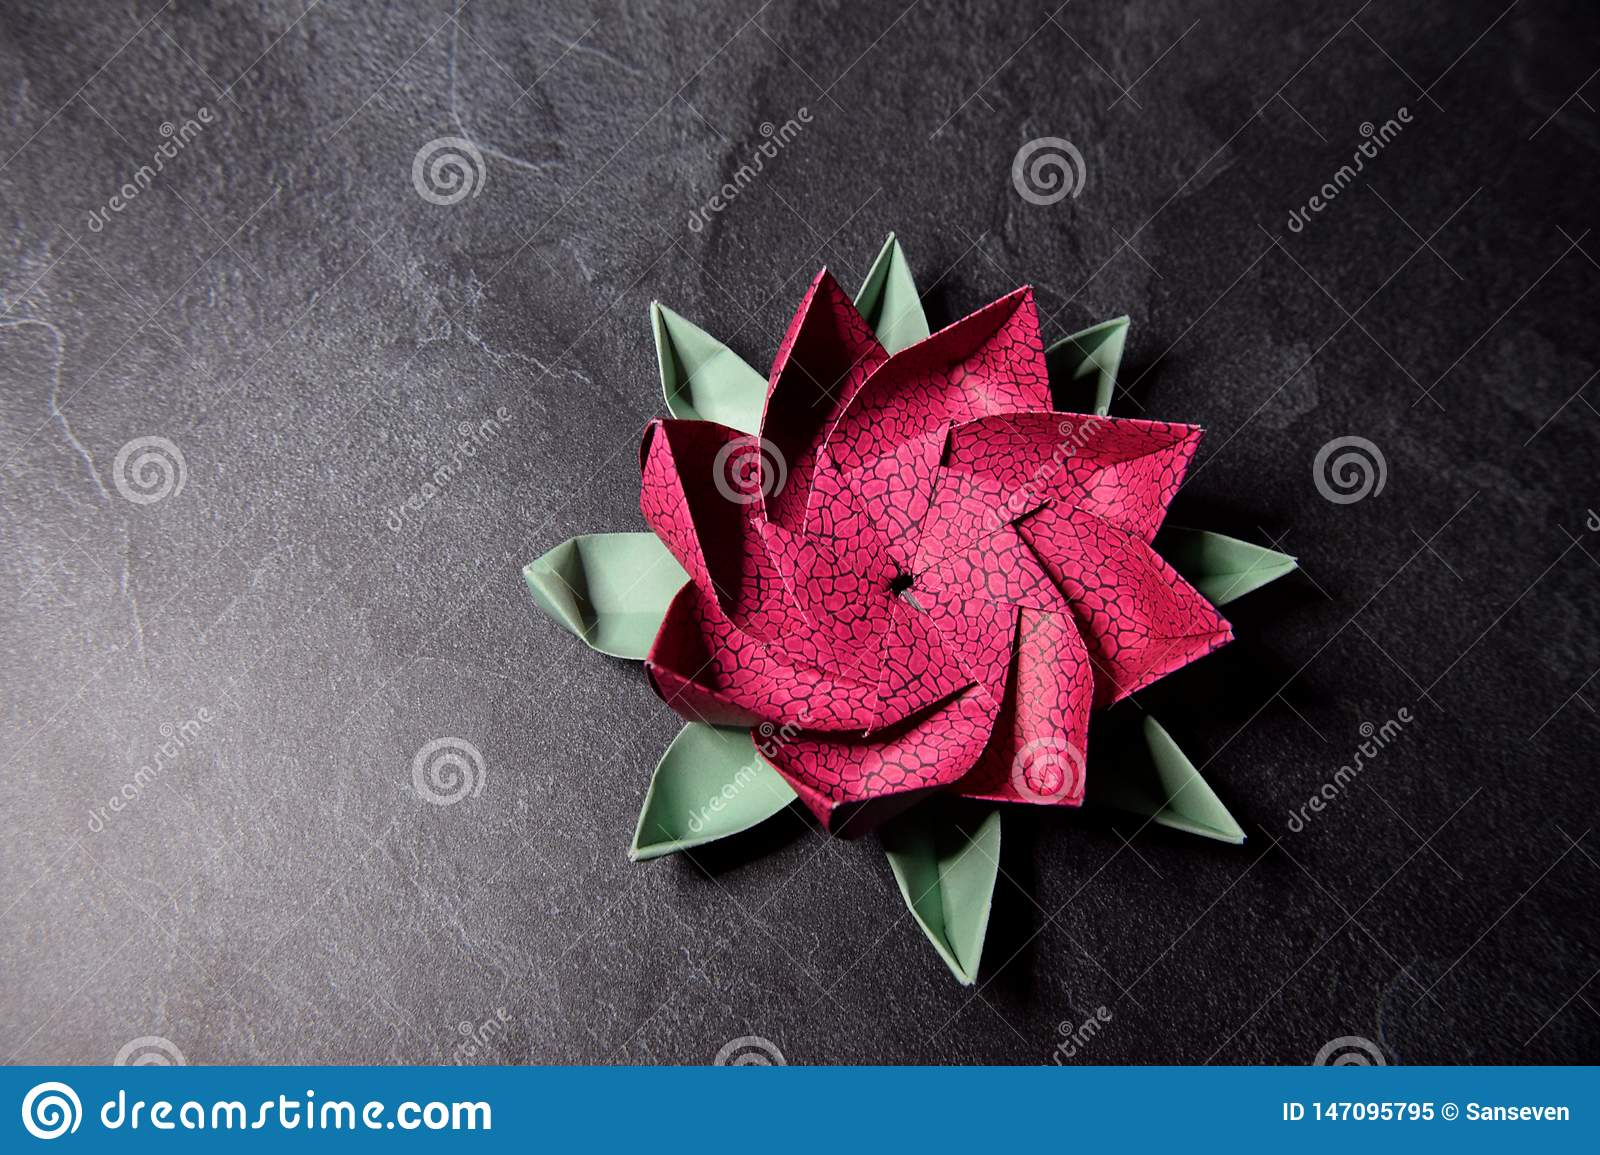 3d origami lotus flower tutorials || how to make an origami lotus ... | 1155x1600